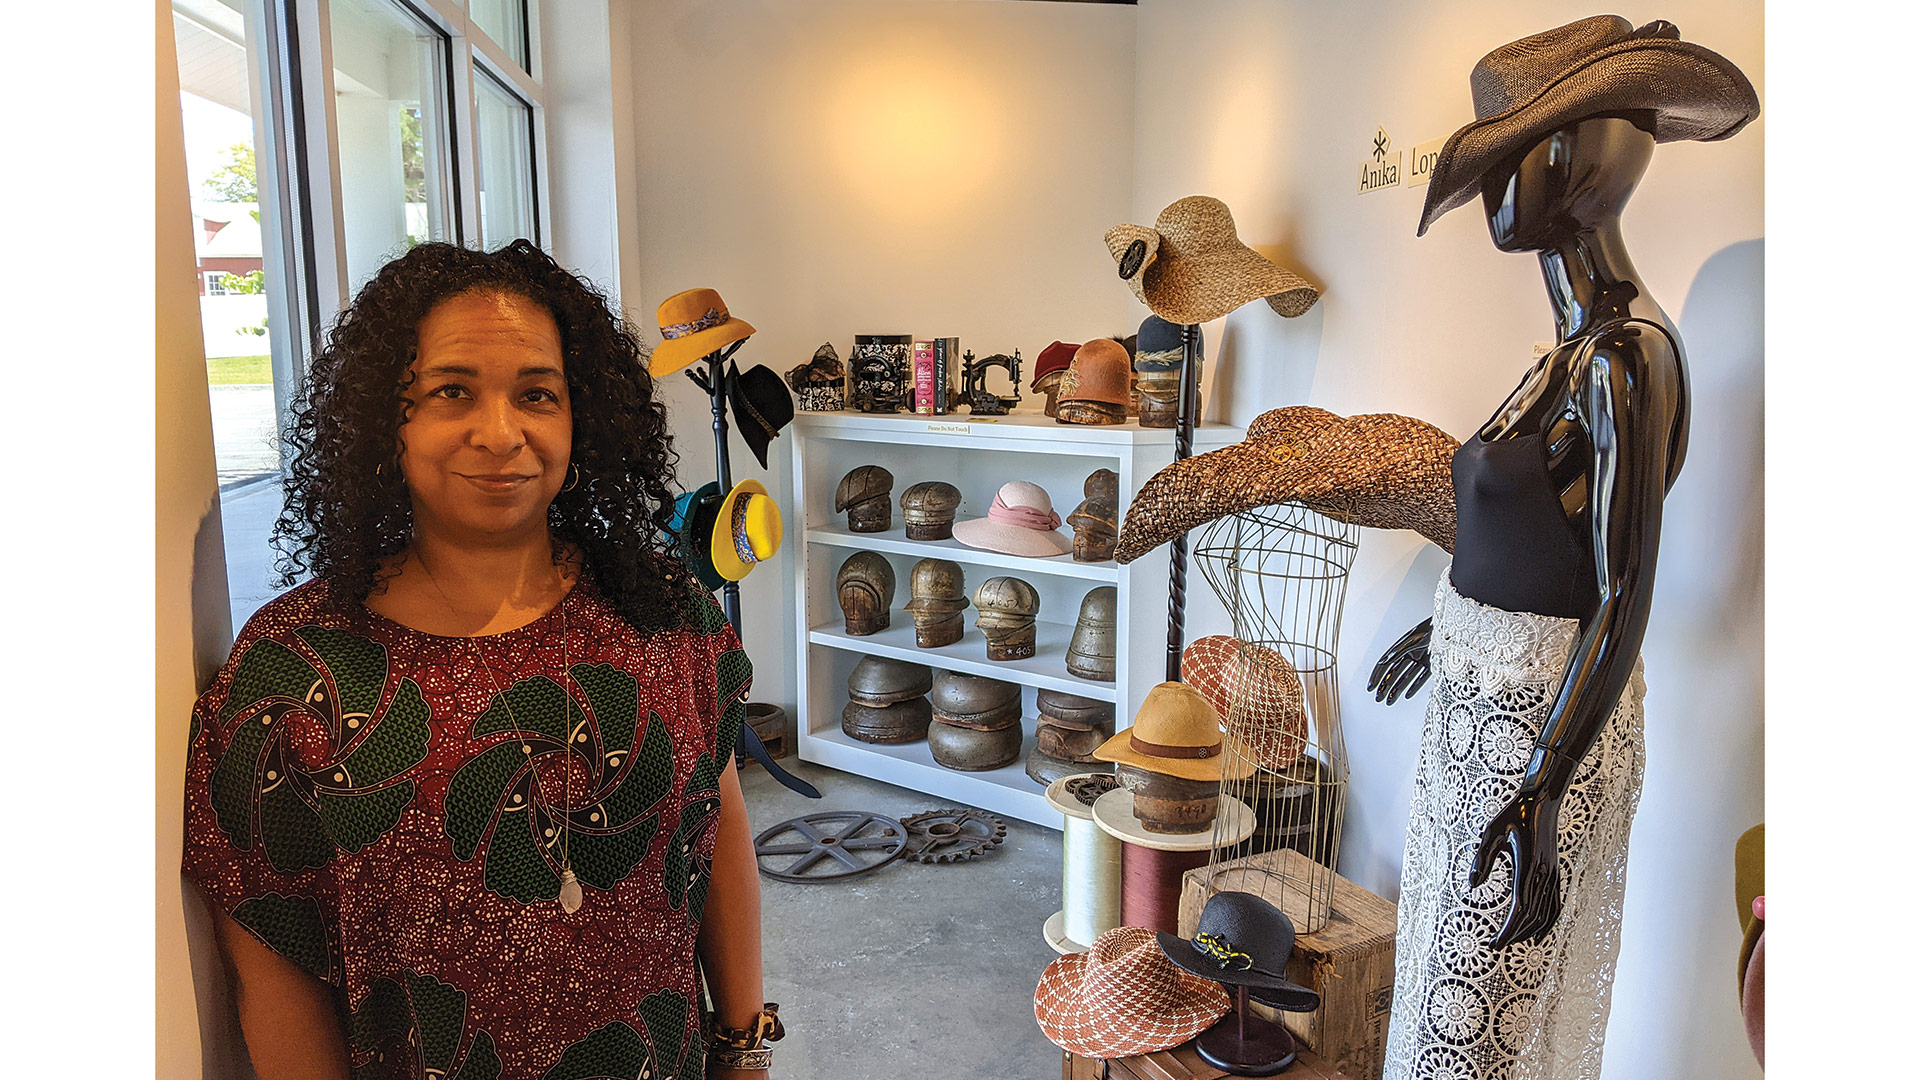 Anika Lopes with the front-window display of her millinery art.